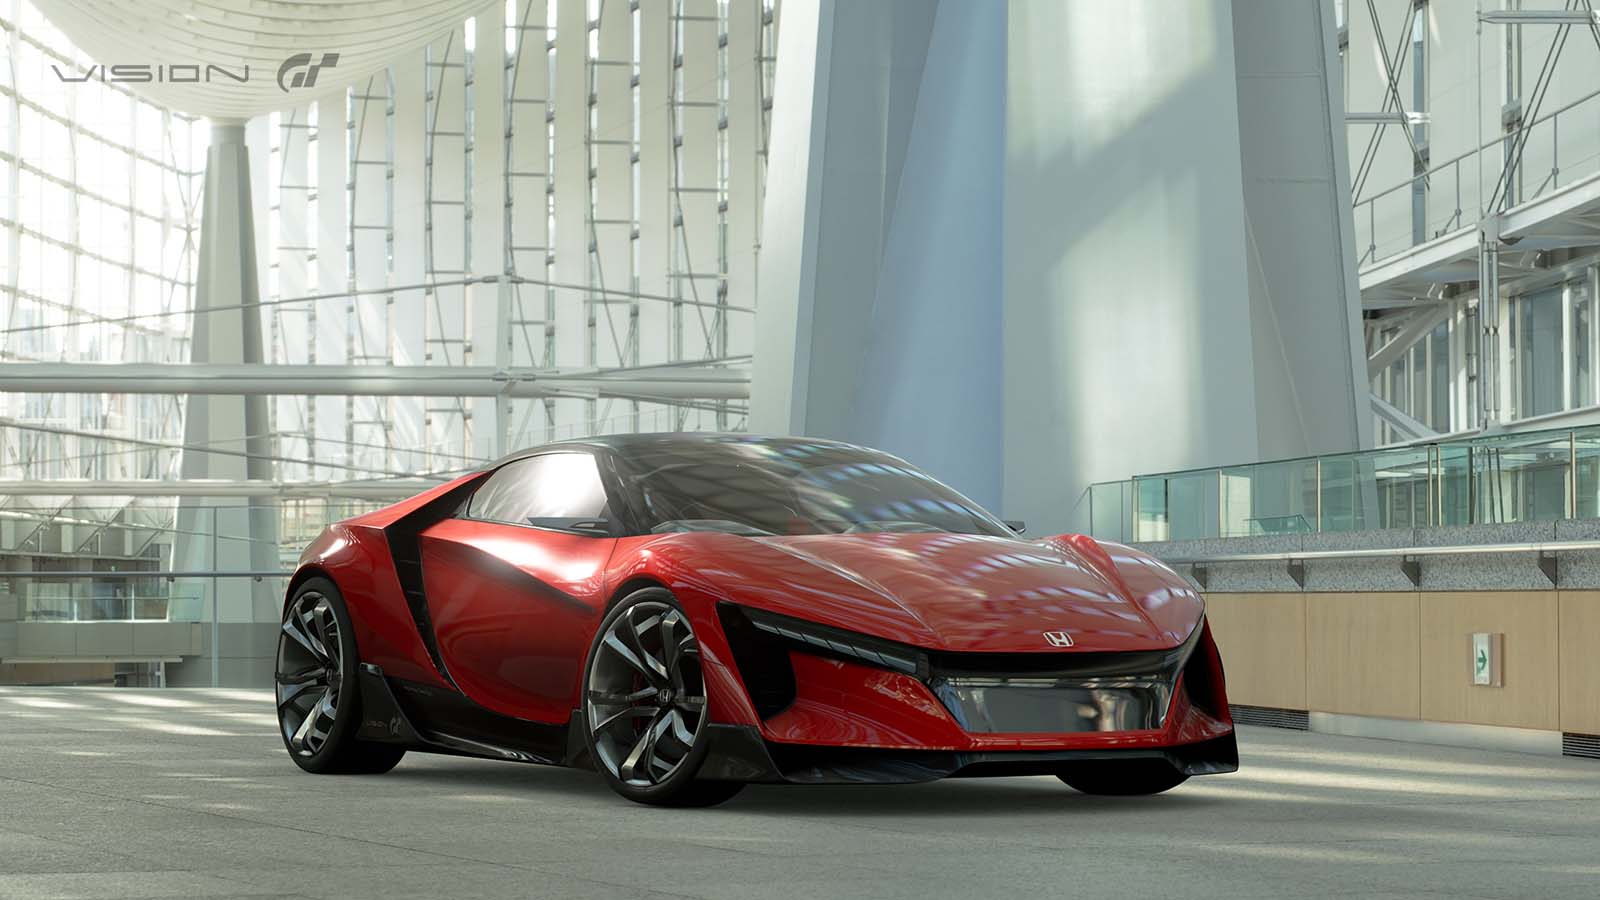 honda 39 s baby nsx emerges as sports vision gran turismo concept. Black Bedroom Furniture Sets. Home Design Ideas